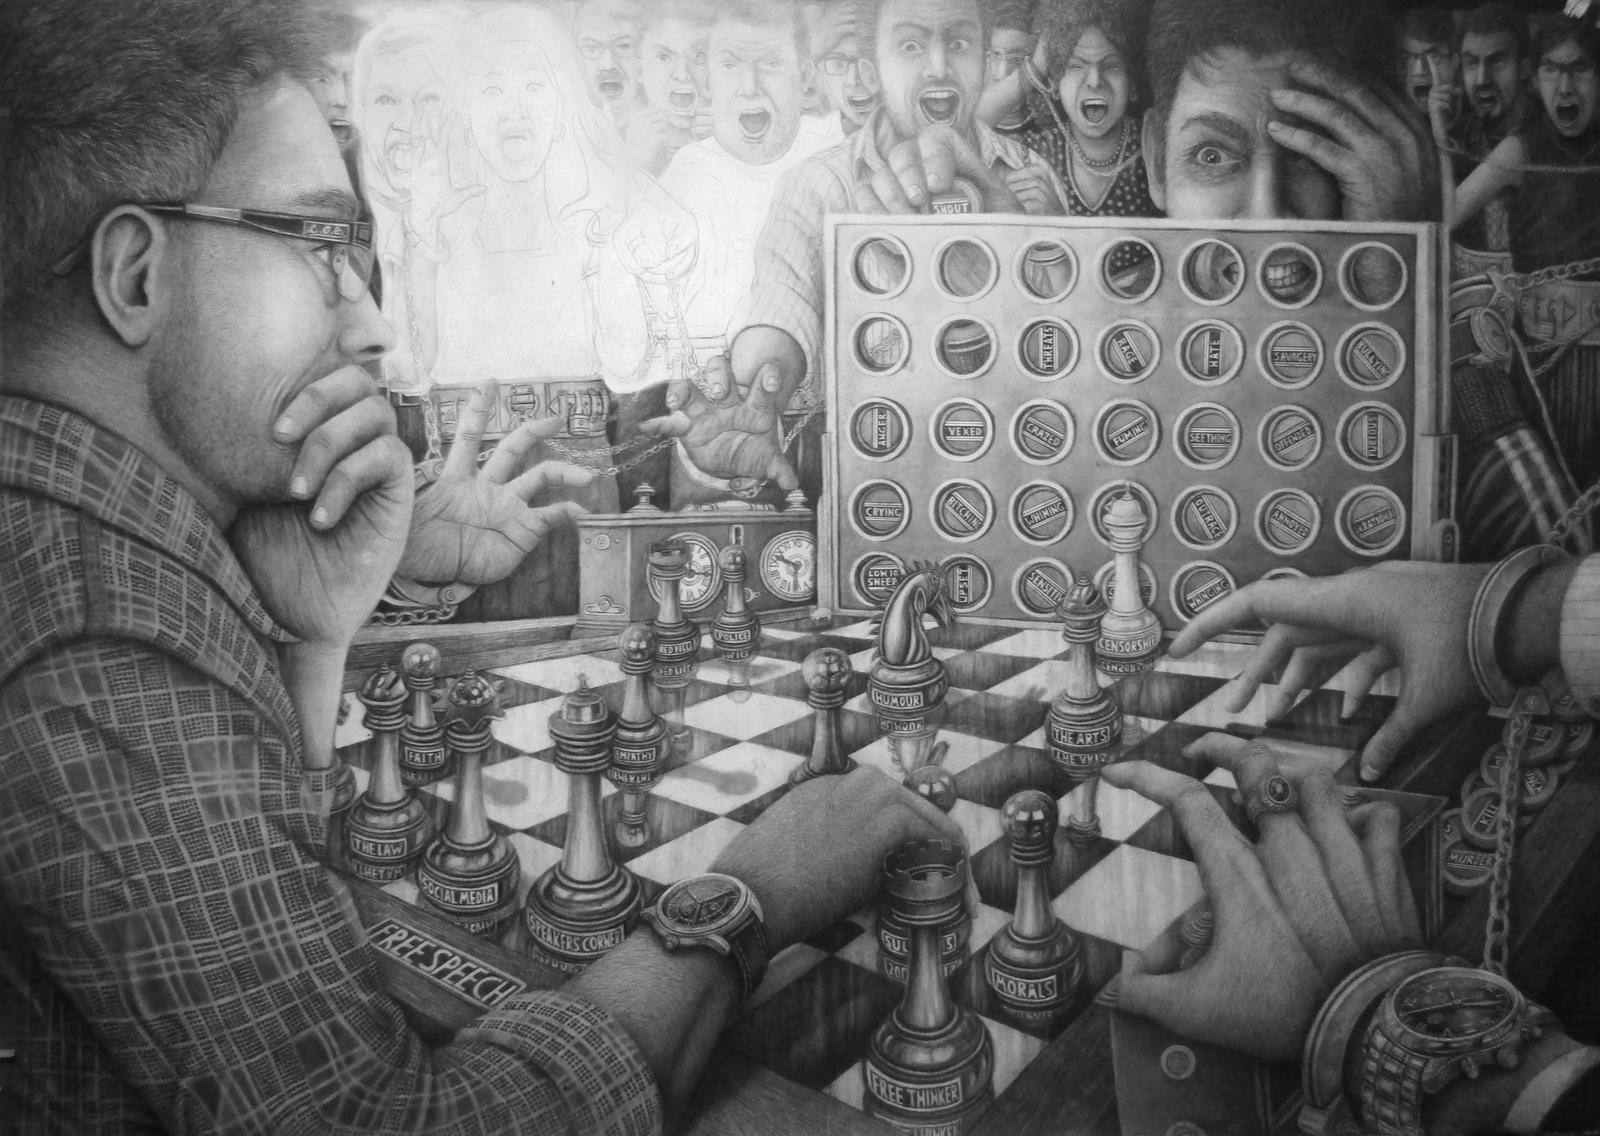 STAGE 3 OF MY A0 ARTWORK TITLED 'I'M PLAYING CHESS